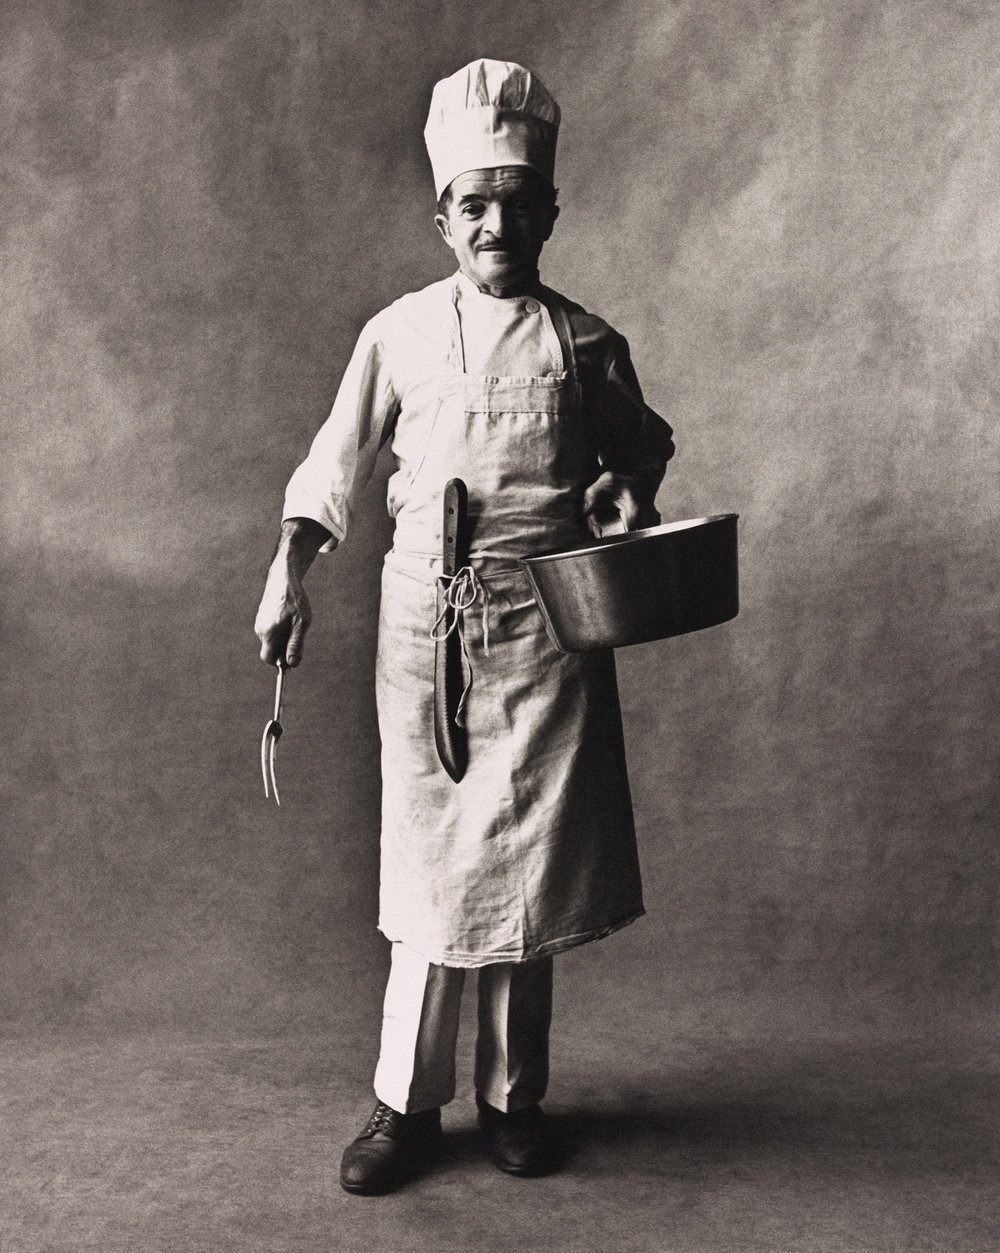 Chef (A) , New York, 1951 Platinum-palladium print © Condé Nast